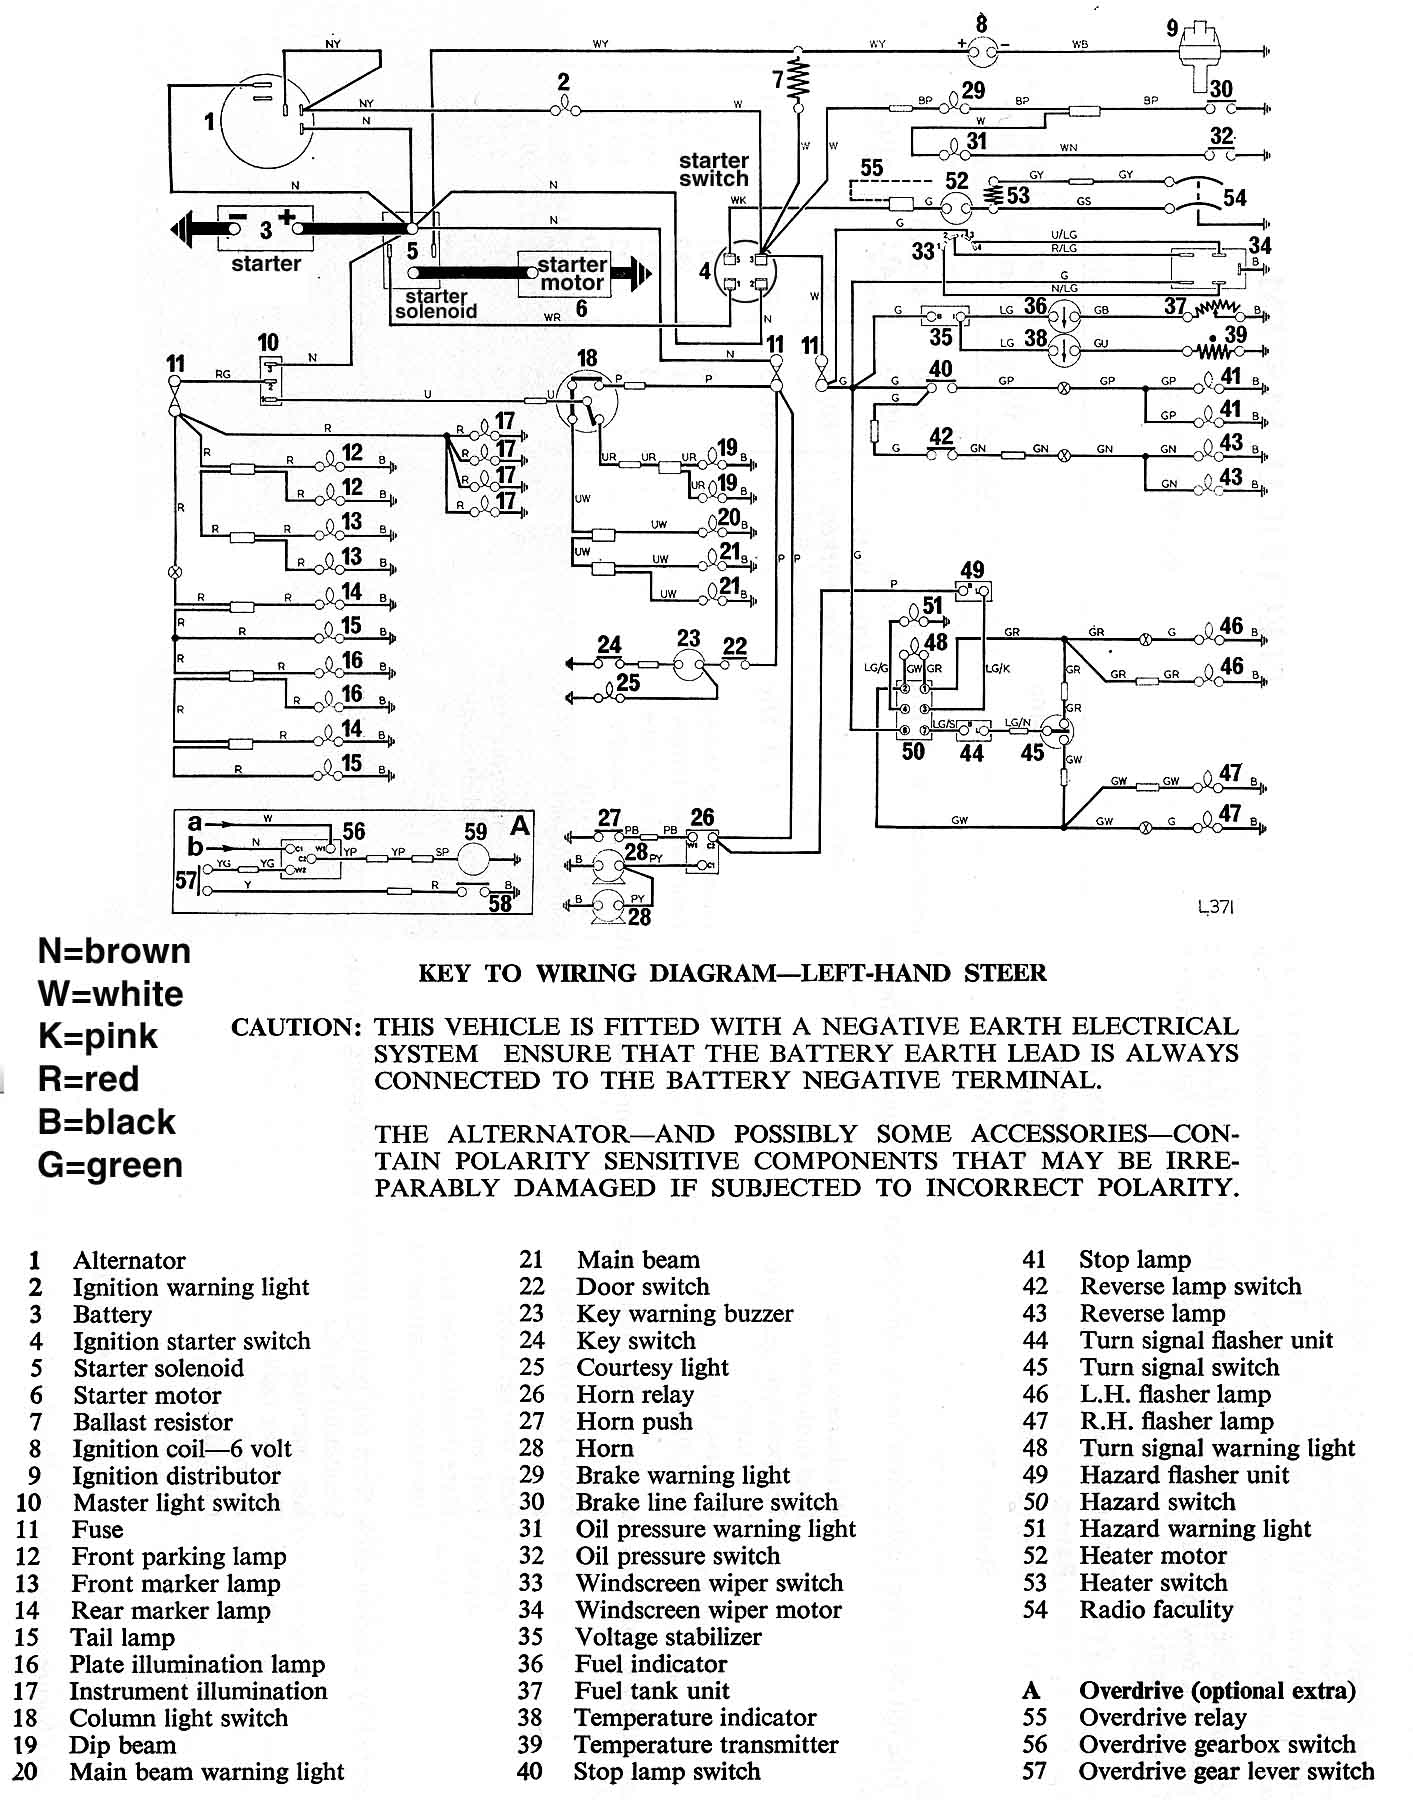 1968 Triumph Spitfire Wiring Diagram Diagrams Box 83 Jeep Cj7 Schematics And Gt6 Herald Cadillac Deville